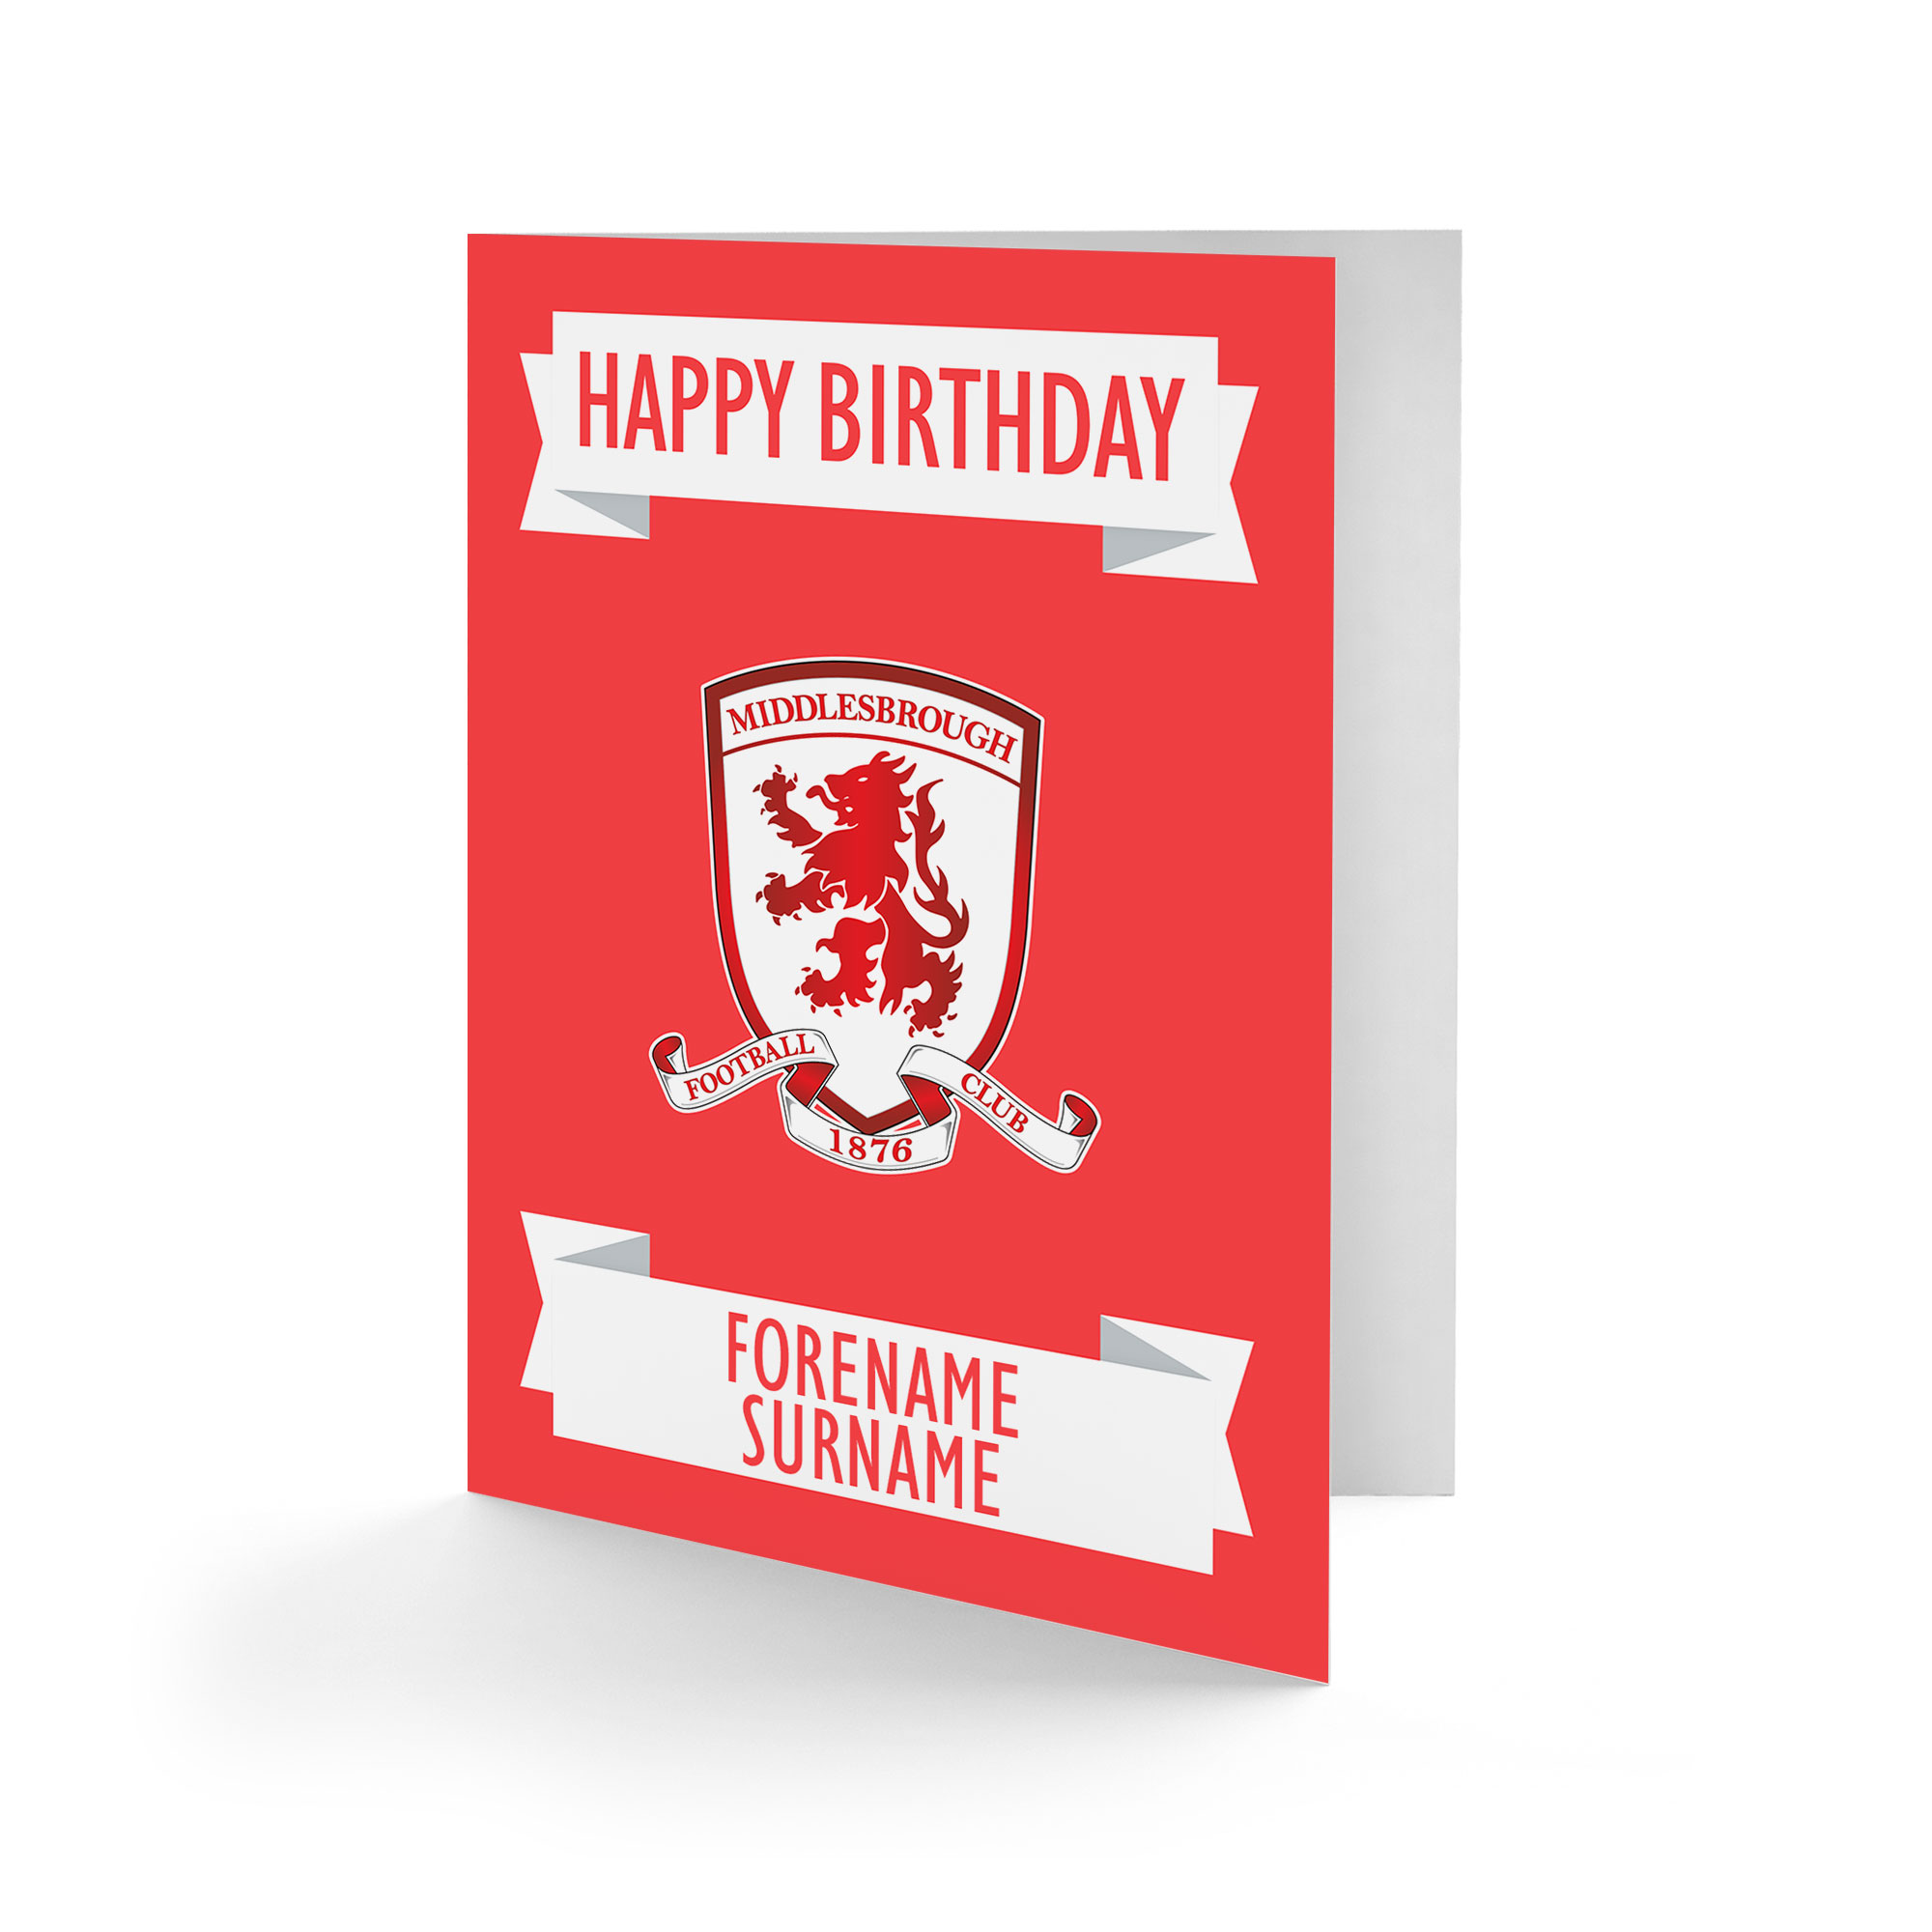 Middlesbrough FC Crest Birthday Card